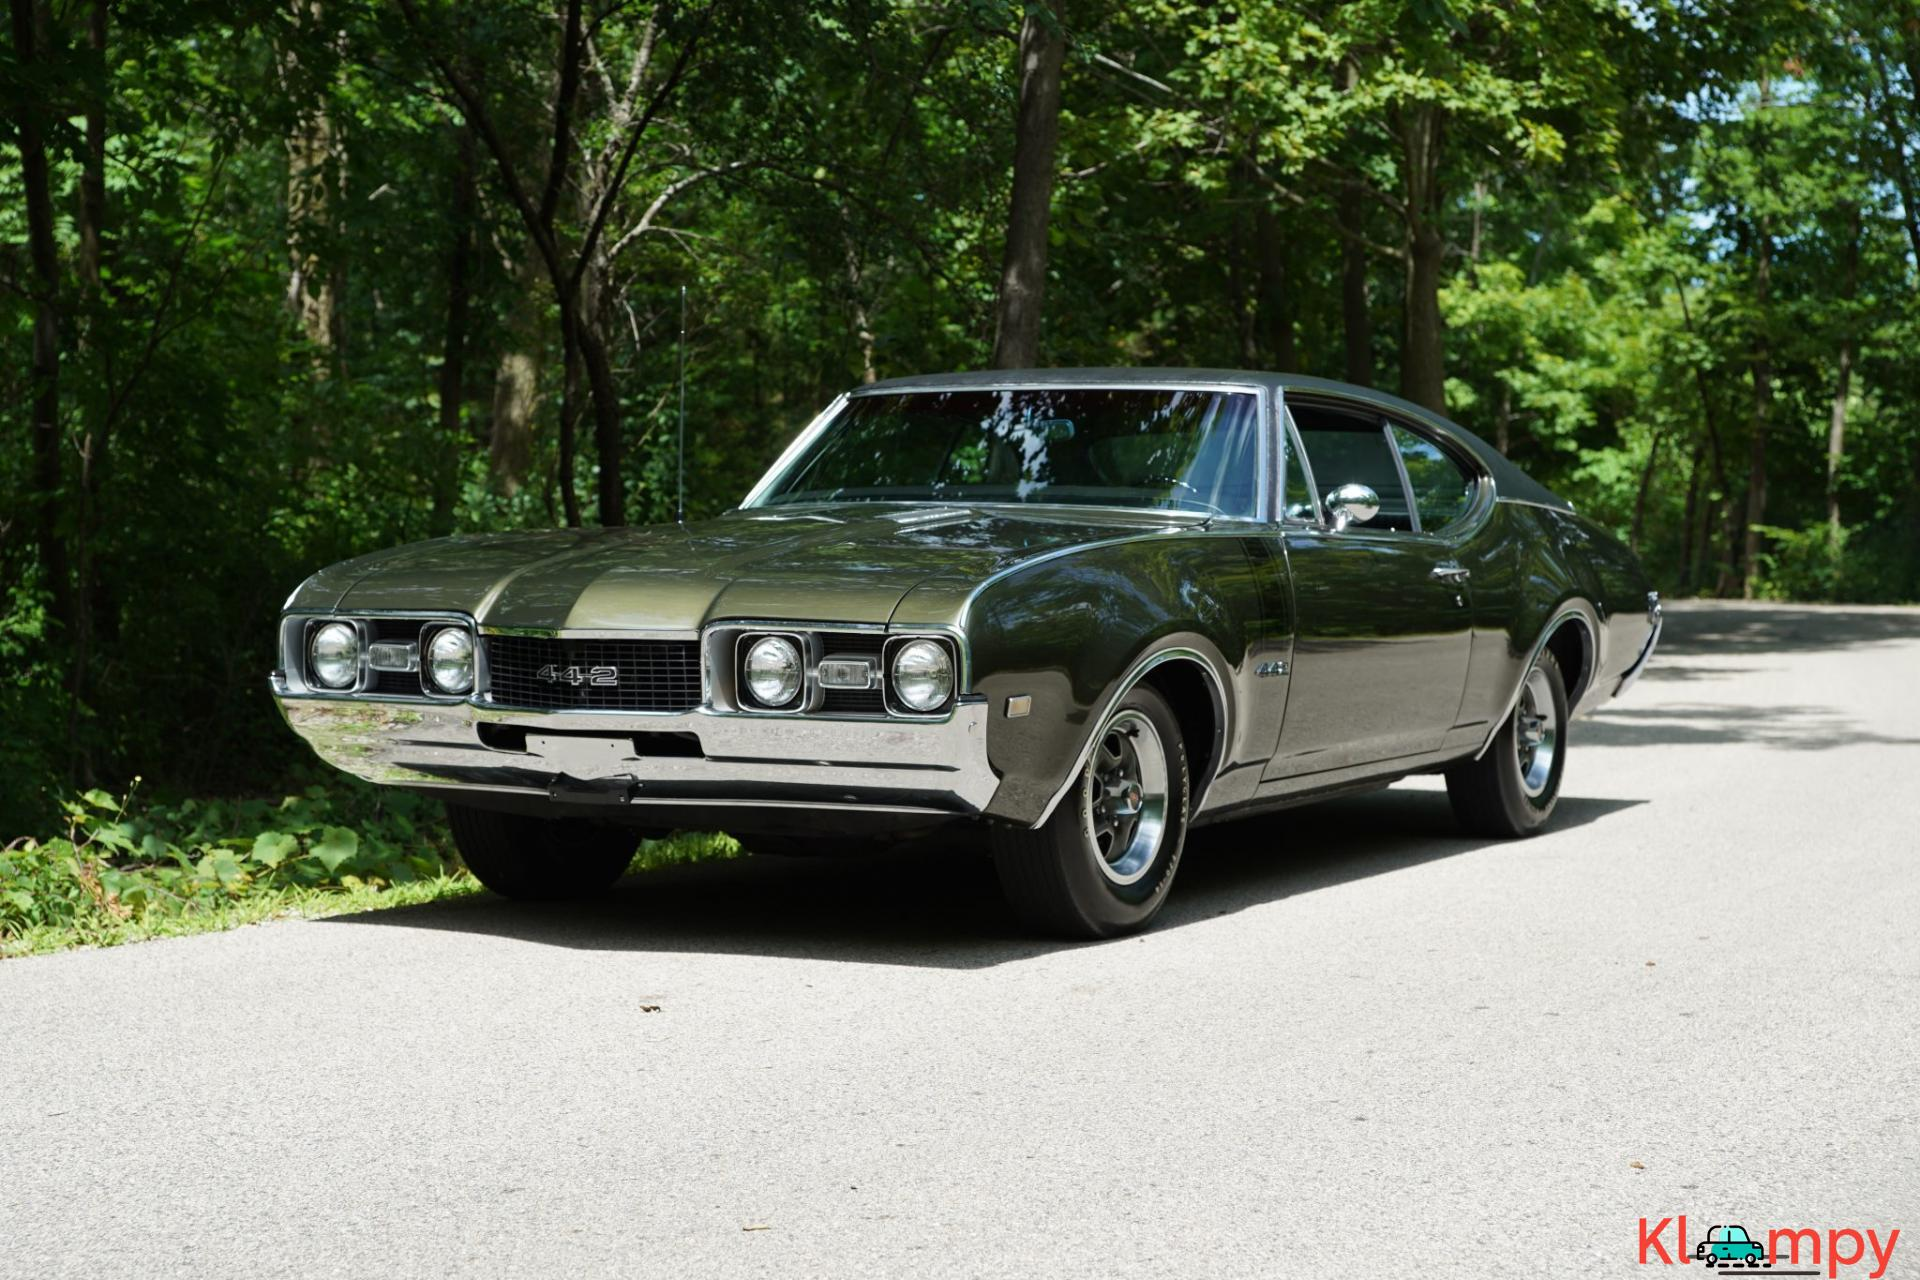 1968 Oldsmobile 442 Holiday Coupe Jade Gold - 9/28